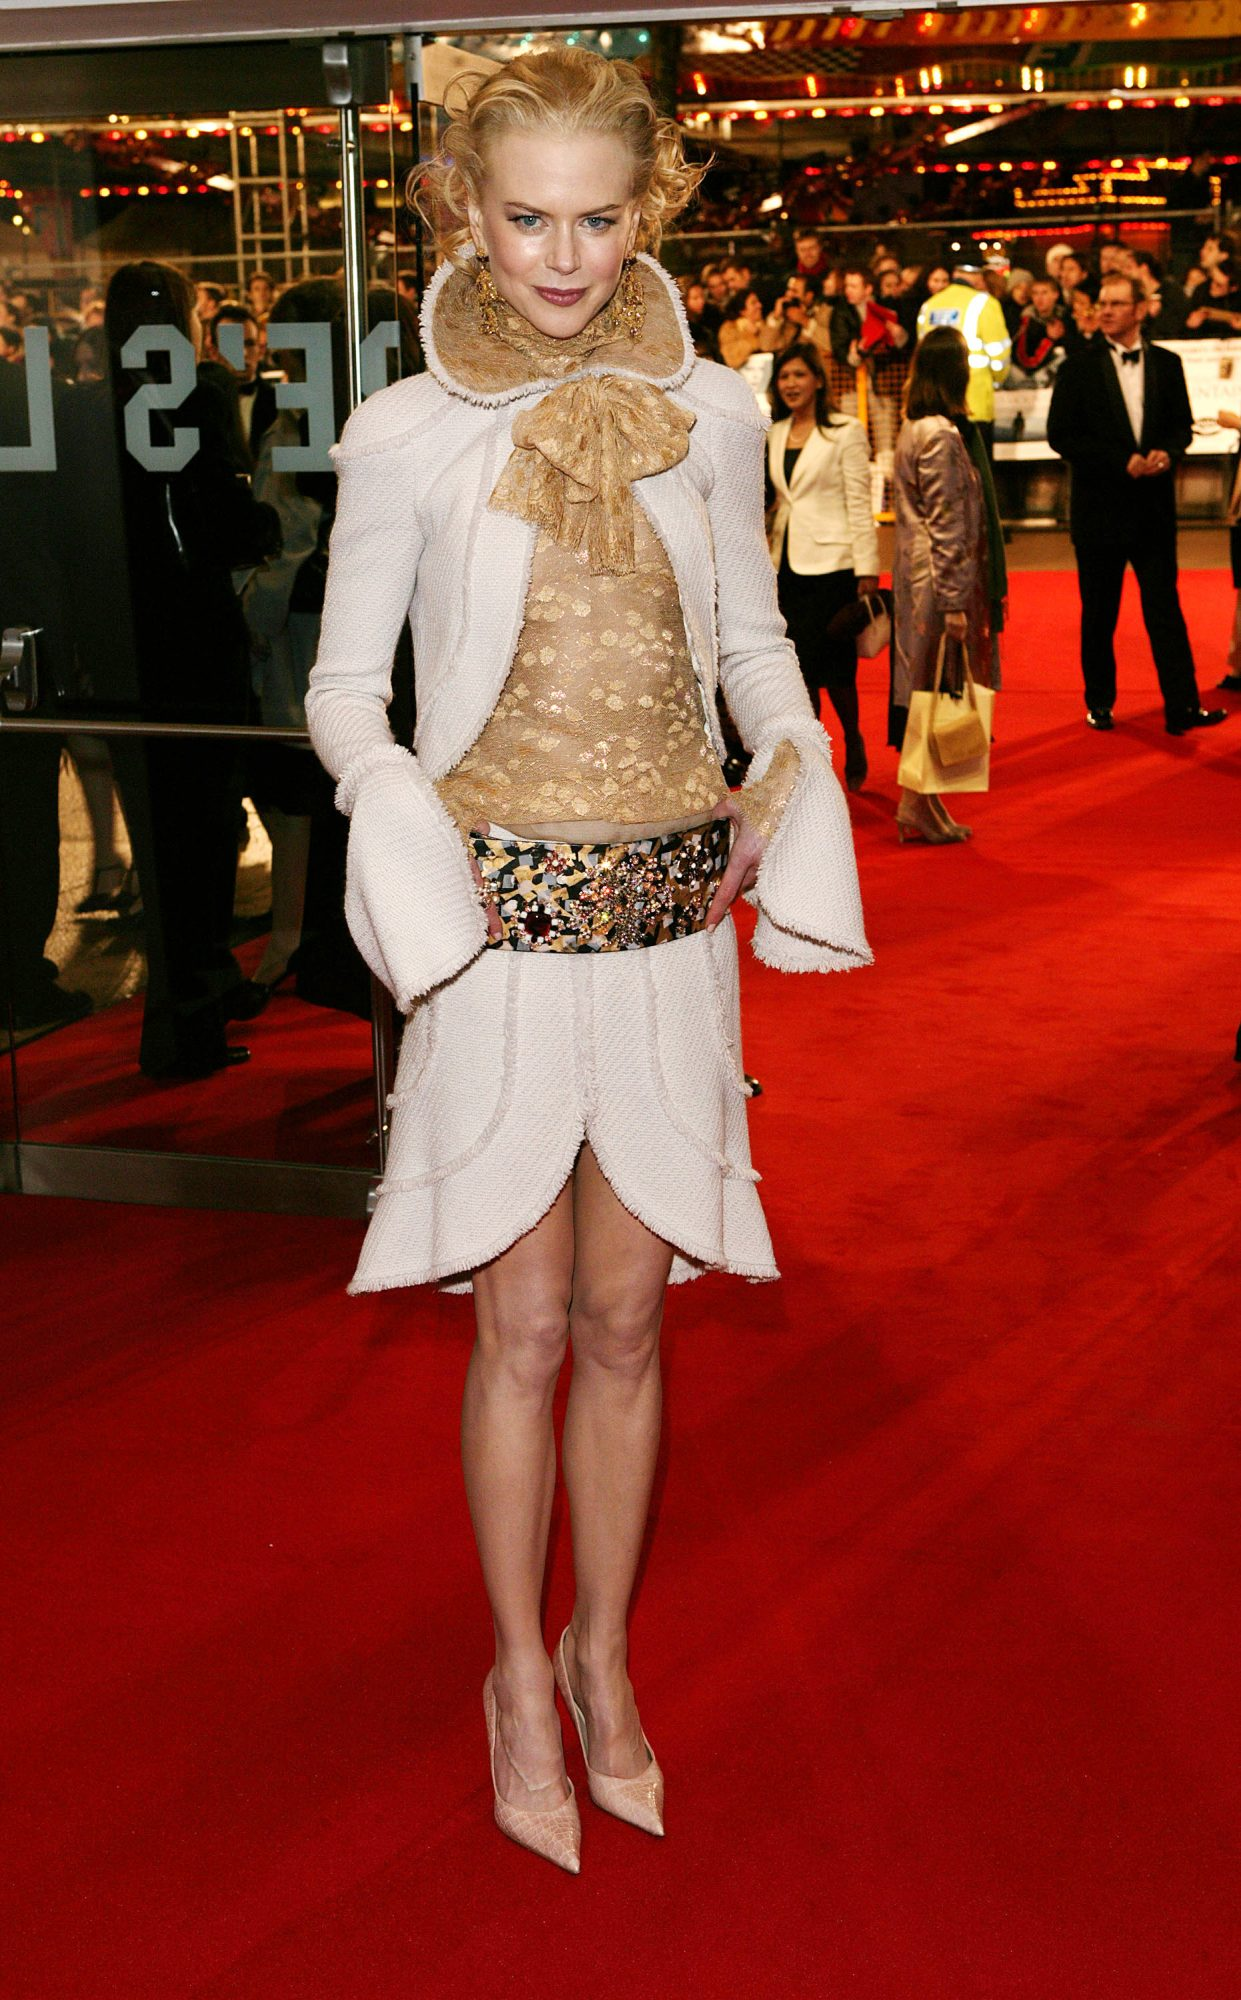 Nicole Kidman at theUK Royal Charity Premiere of Cold Mountain